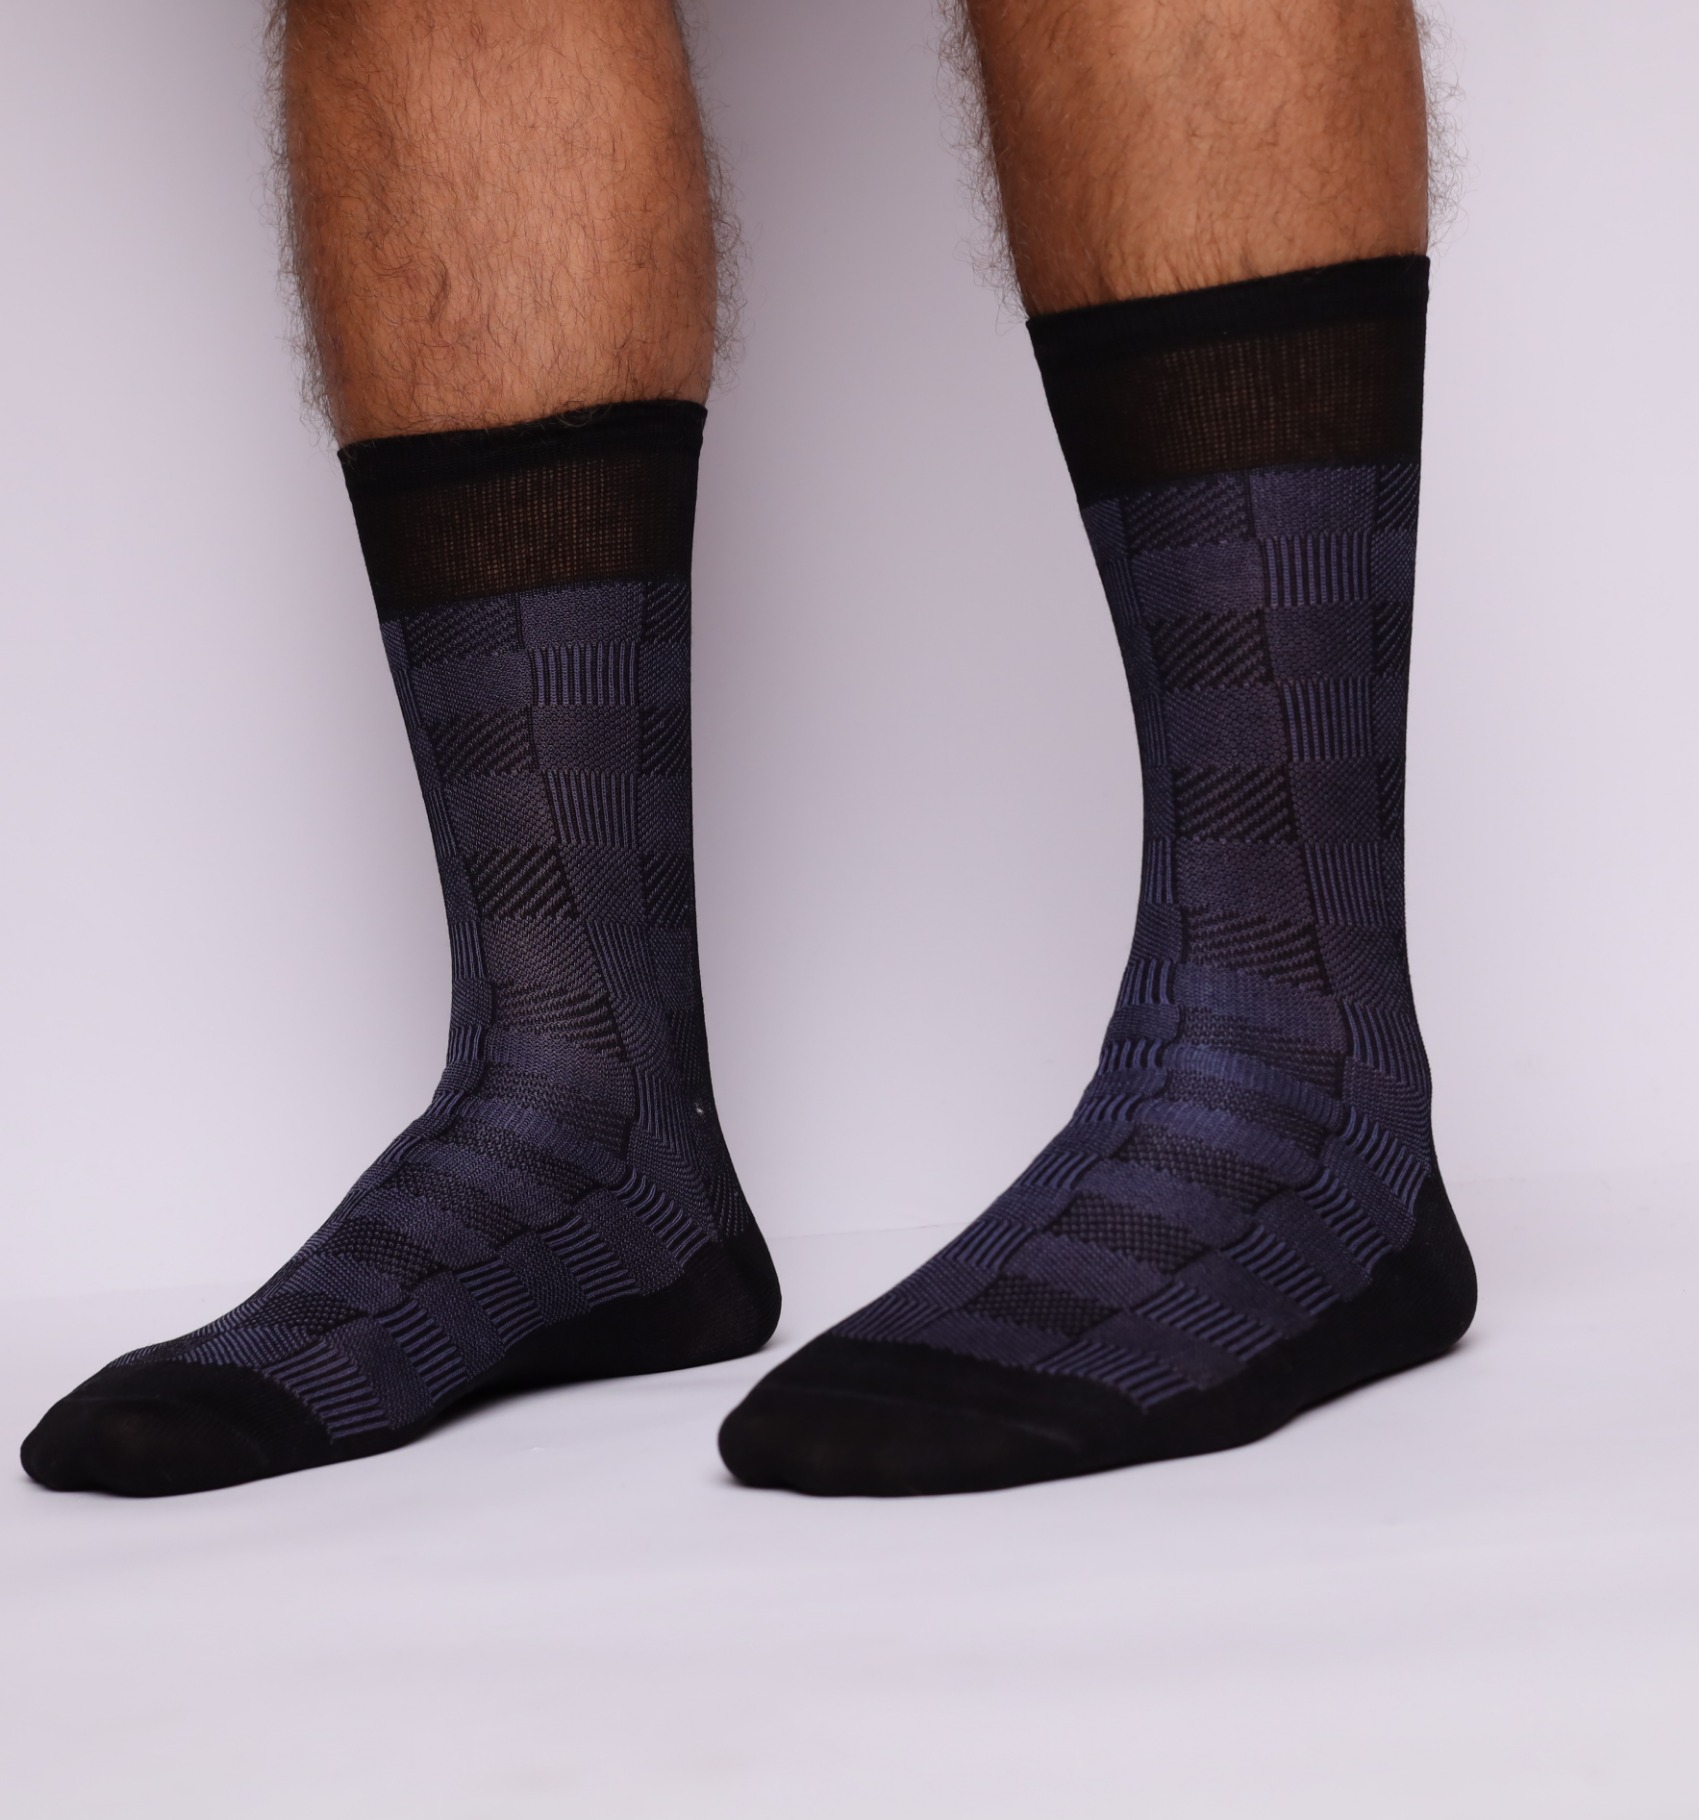 Short Socks With Pattern